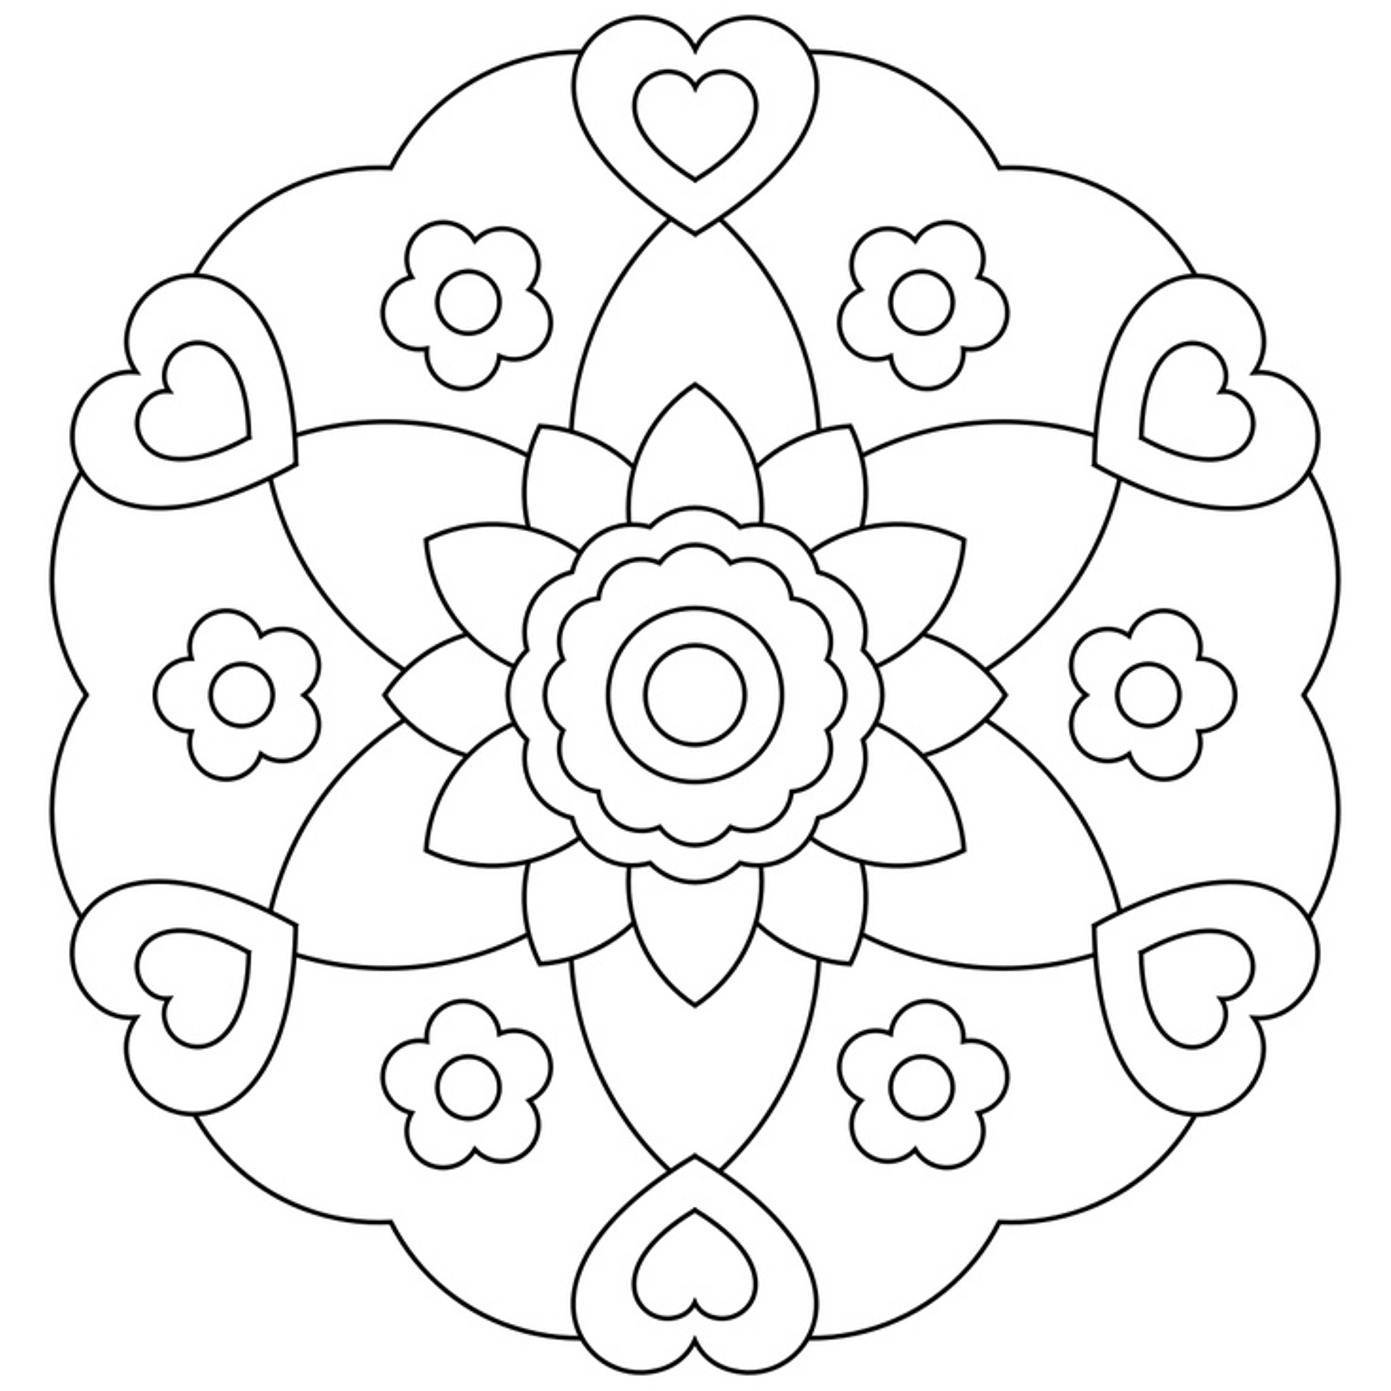 free mandalas to print and color discover our free printable mandalas 100 mandalas zen color and free print mandalas to